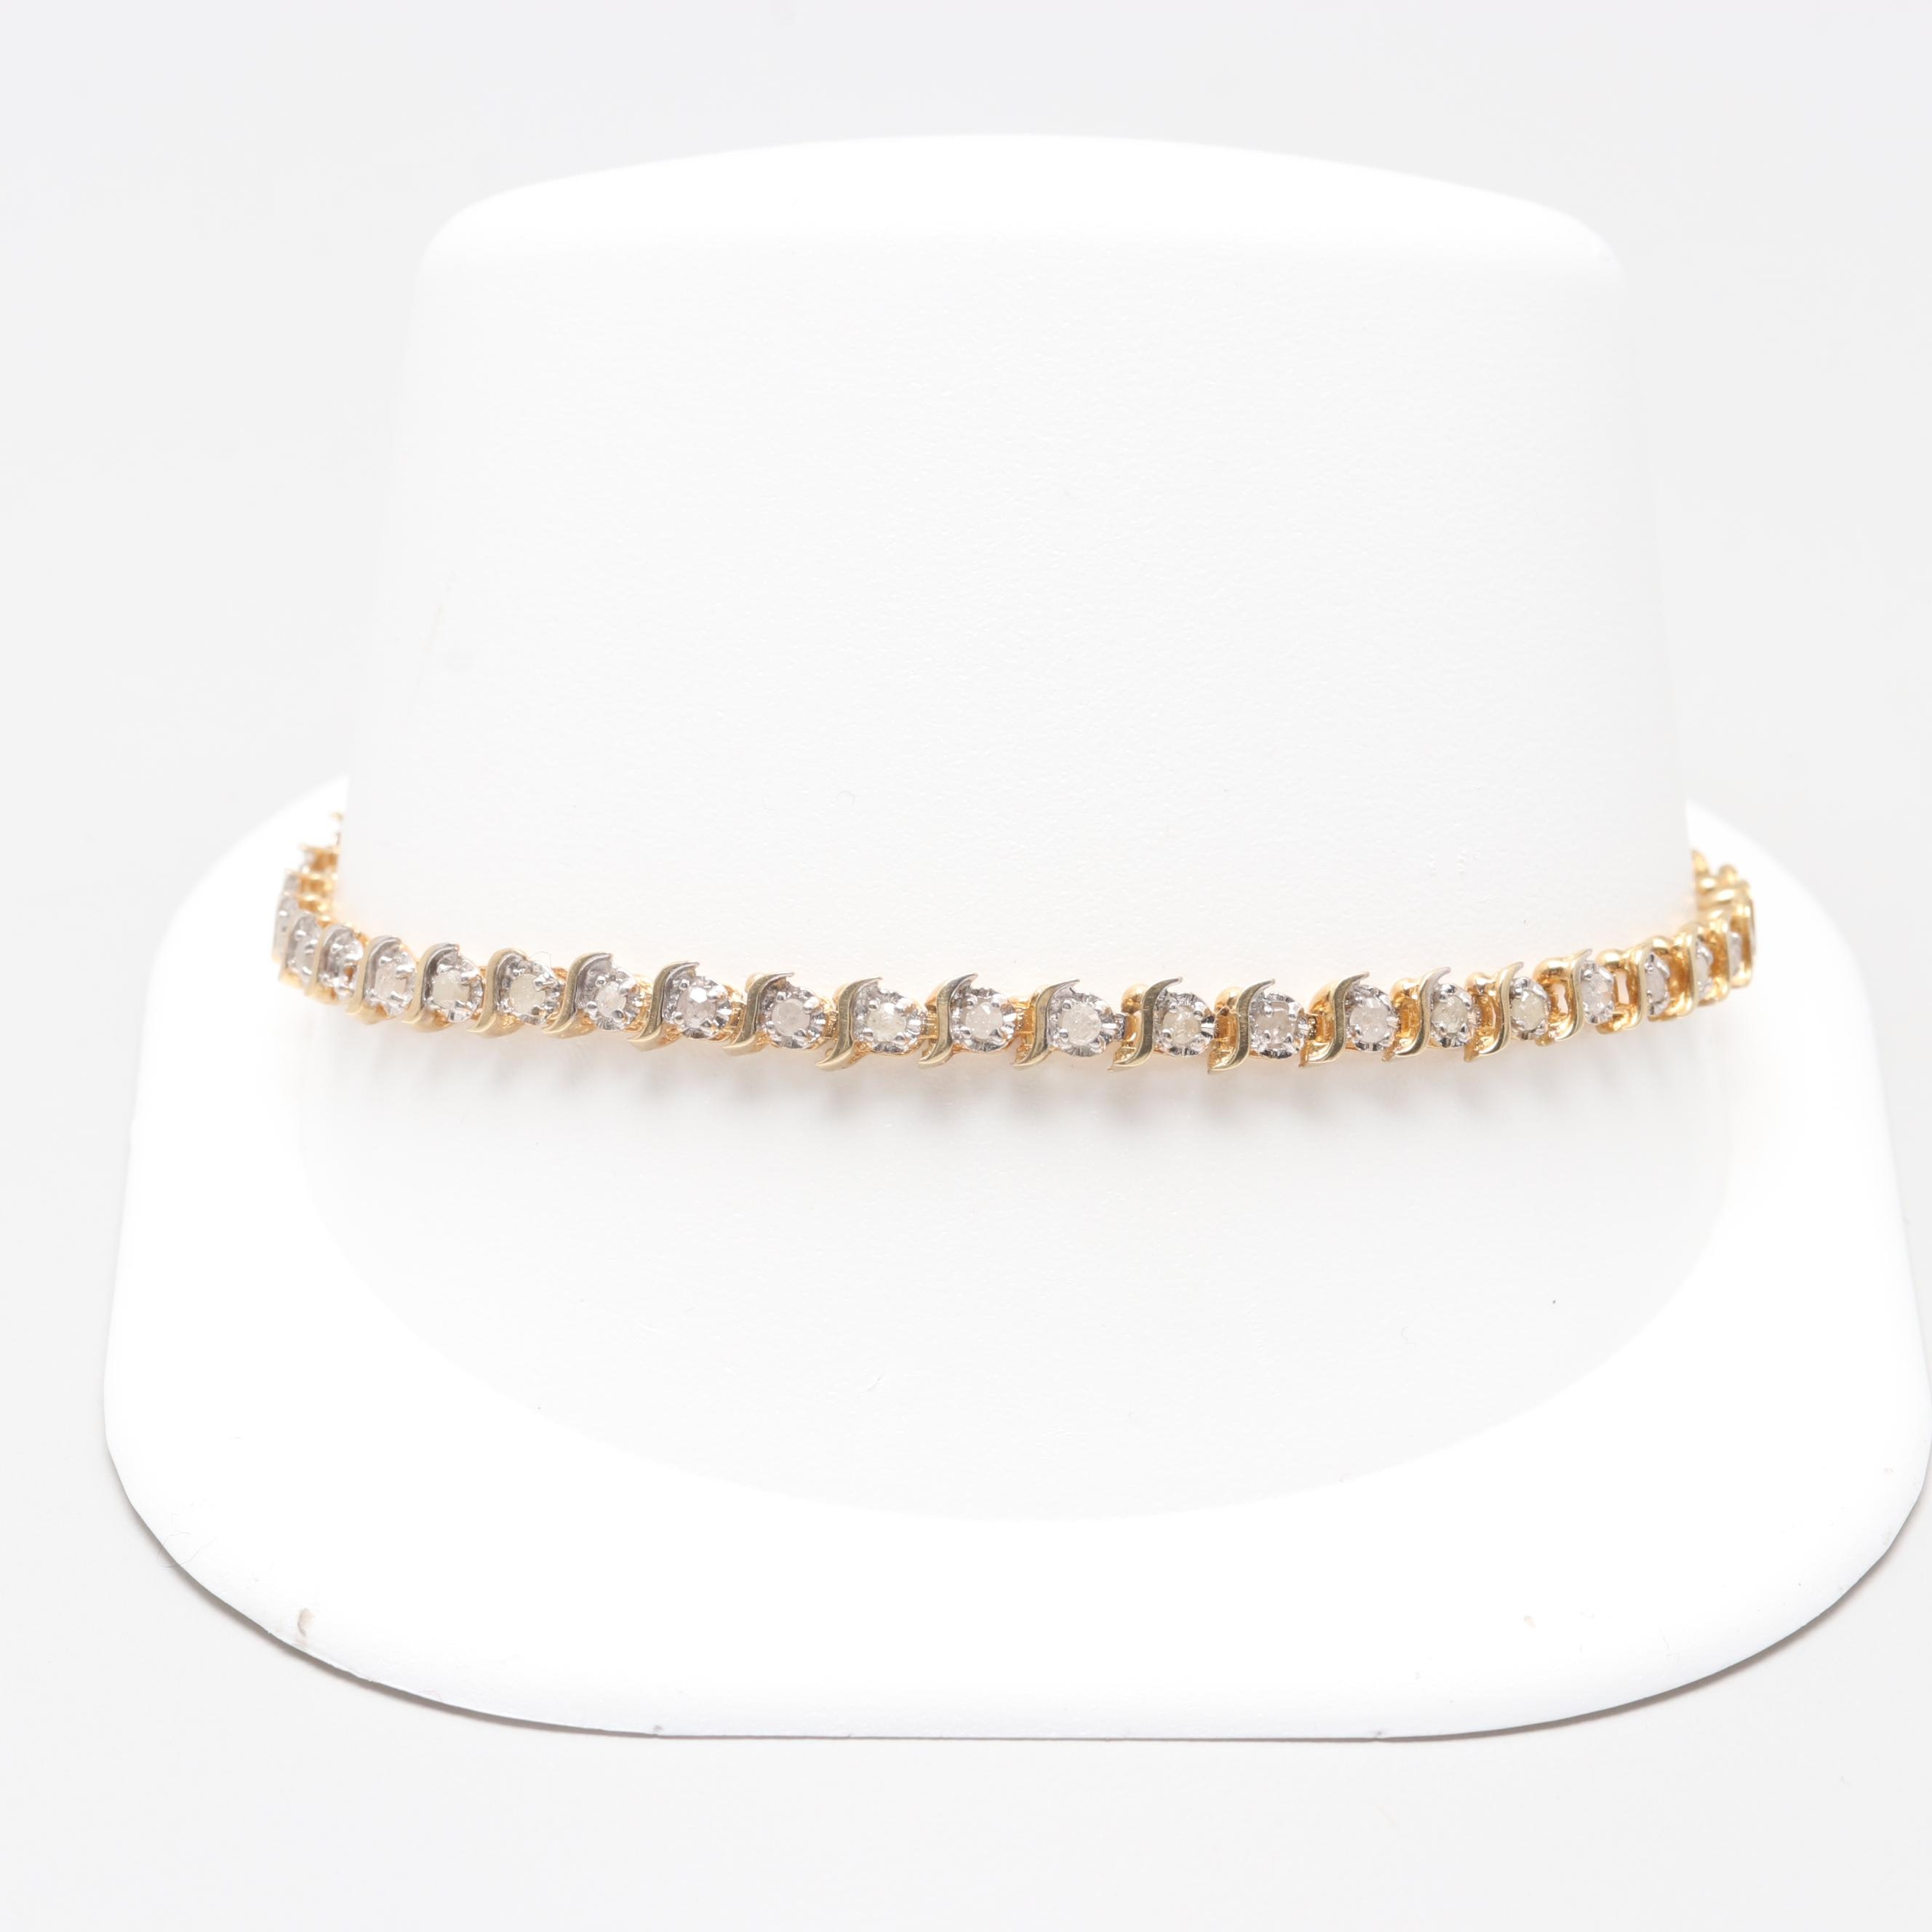 10K Yellow Gold Diamond Link Bracelet